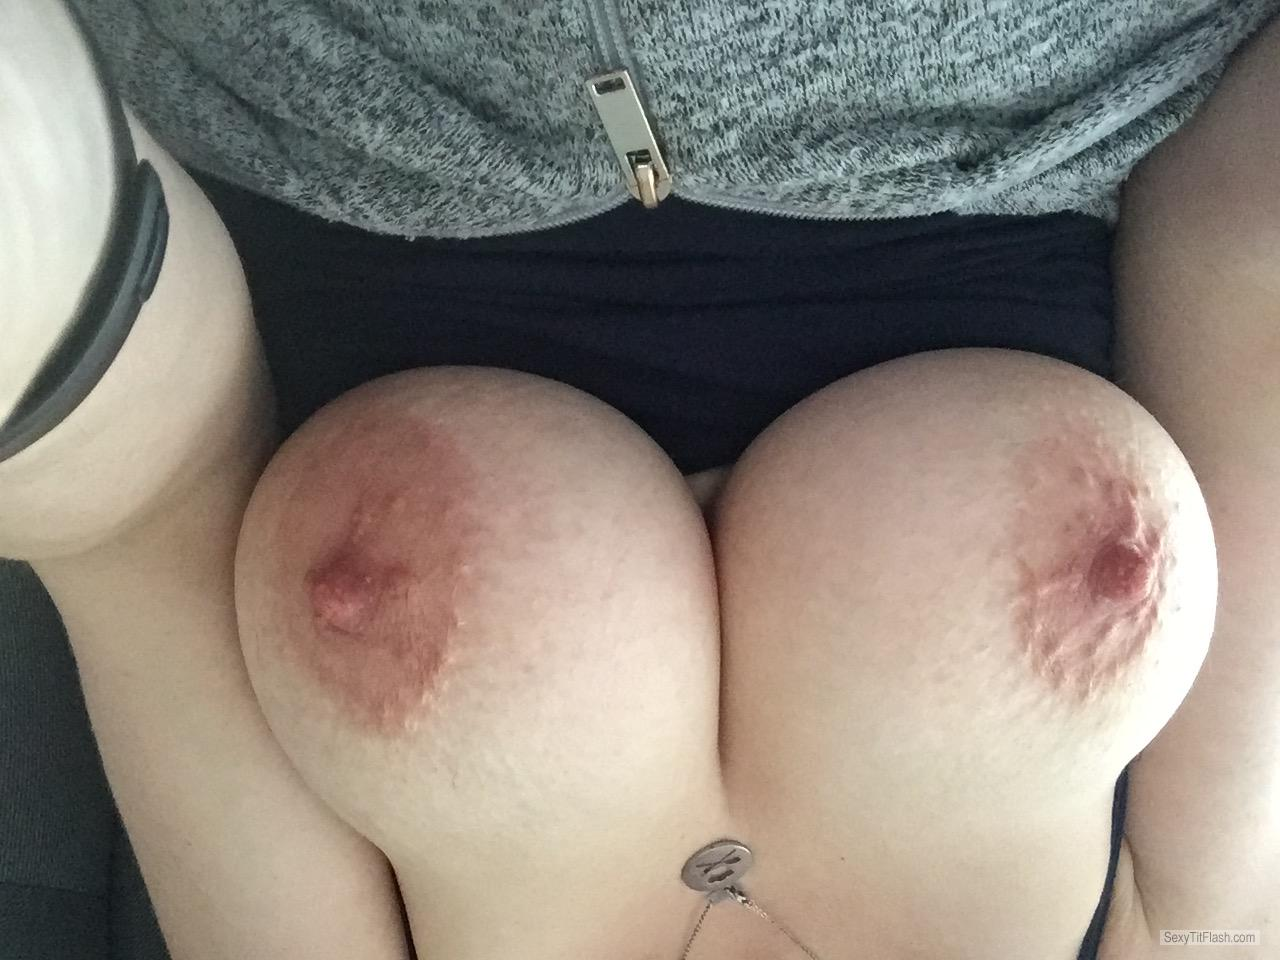 My Big Tits Selfie by ScarlettK